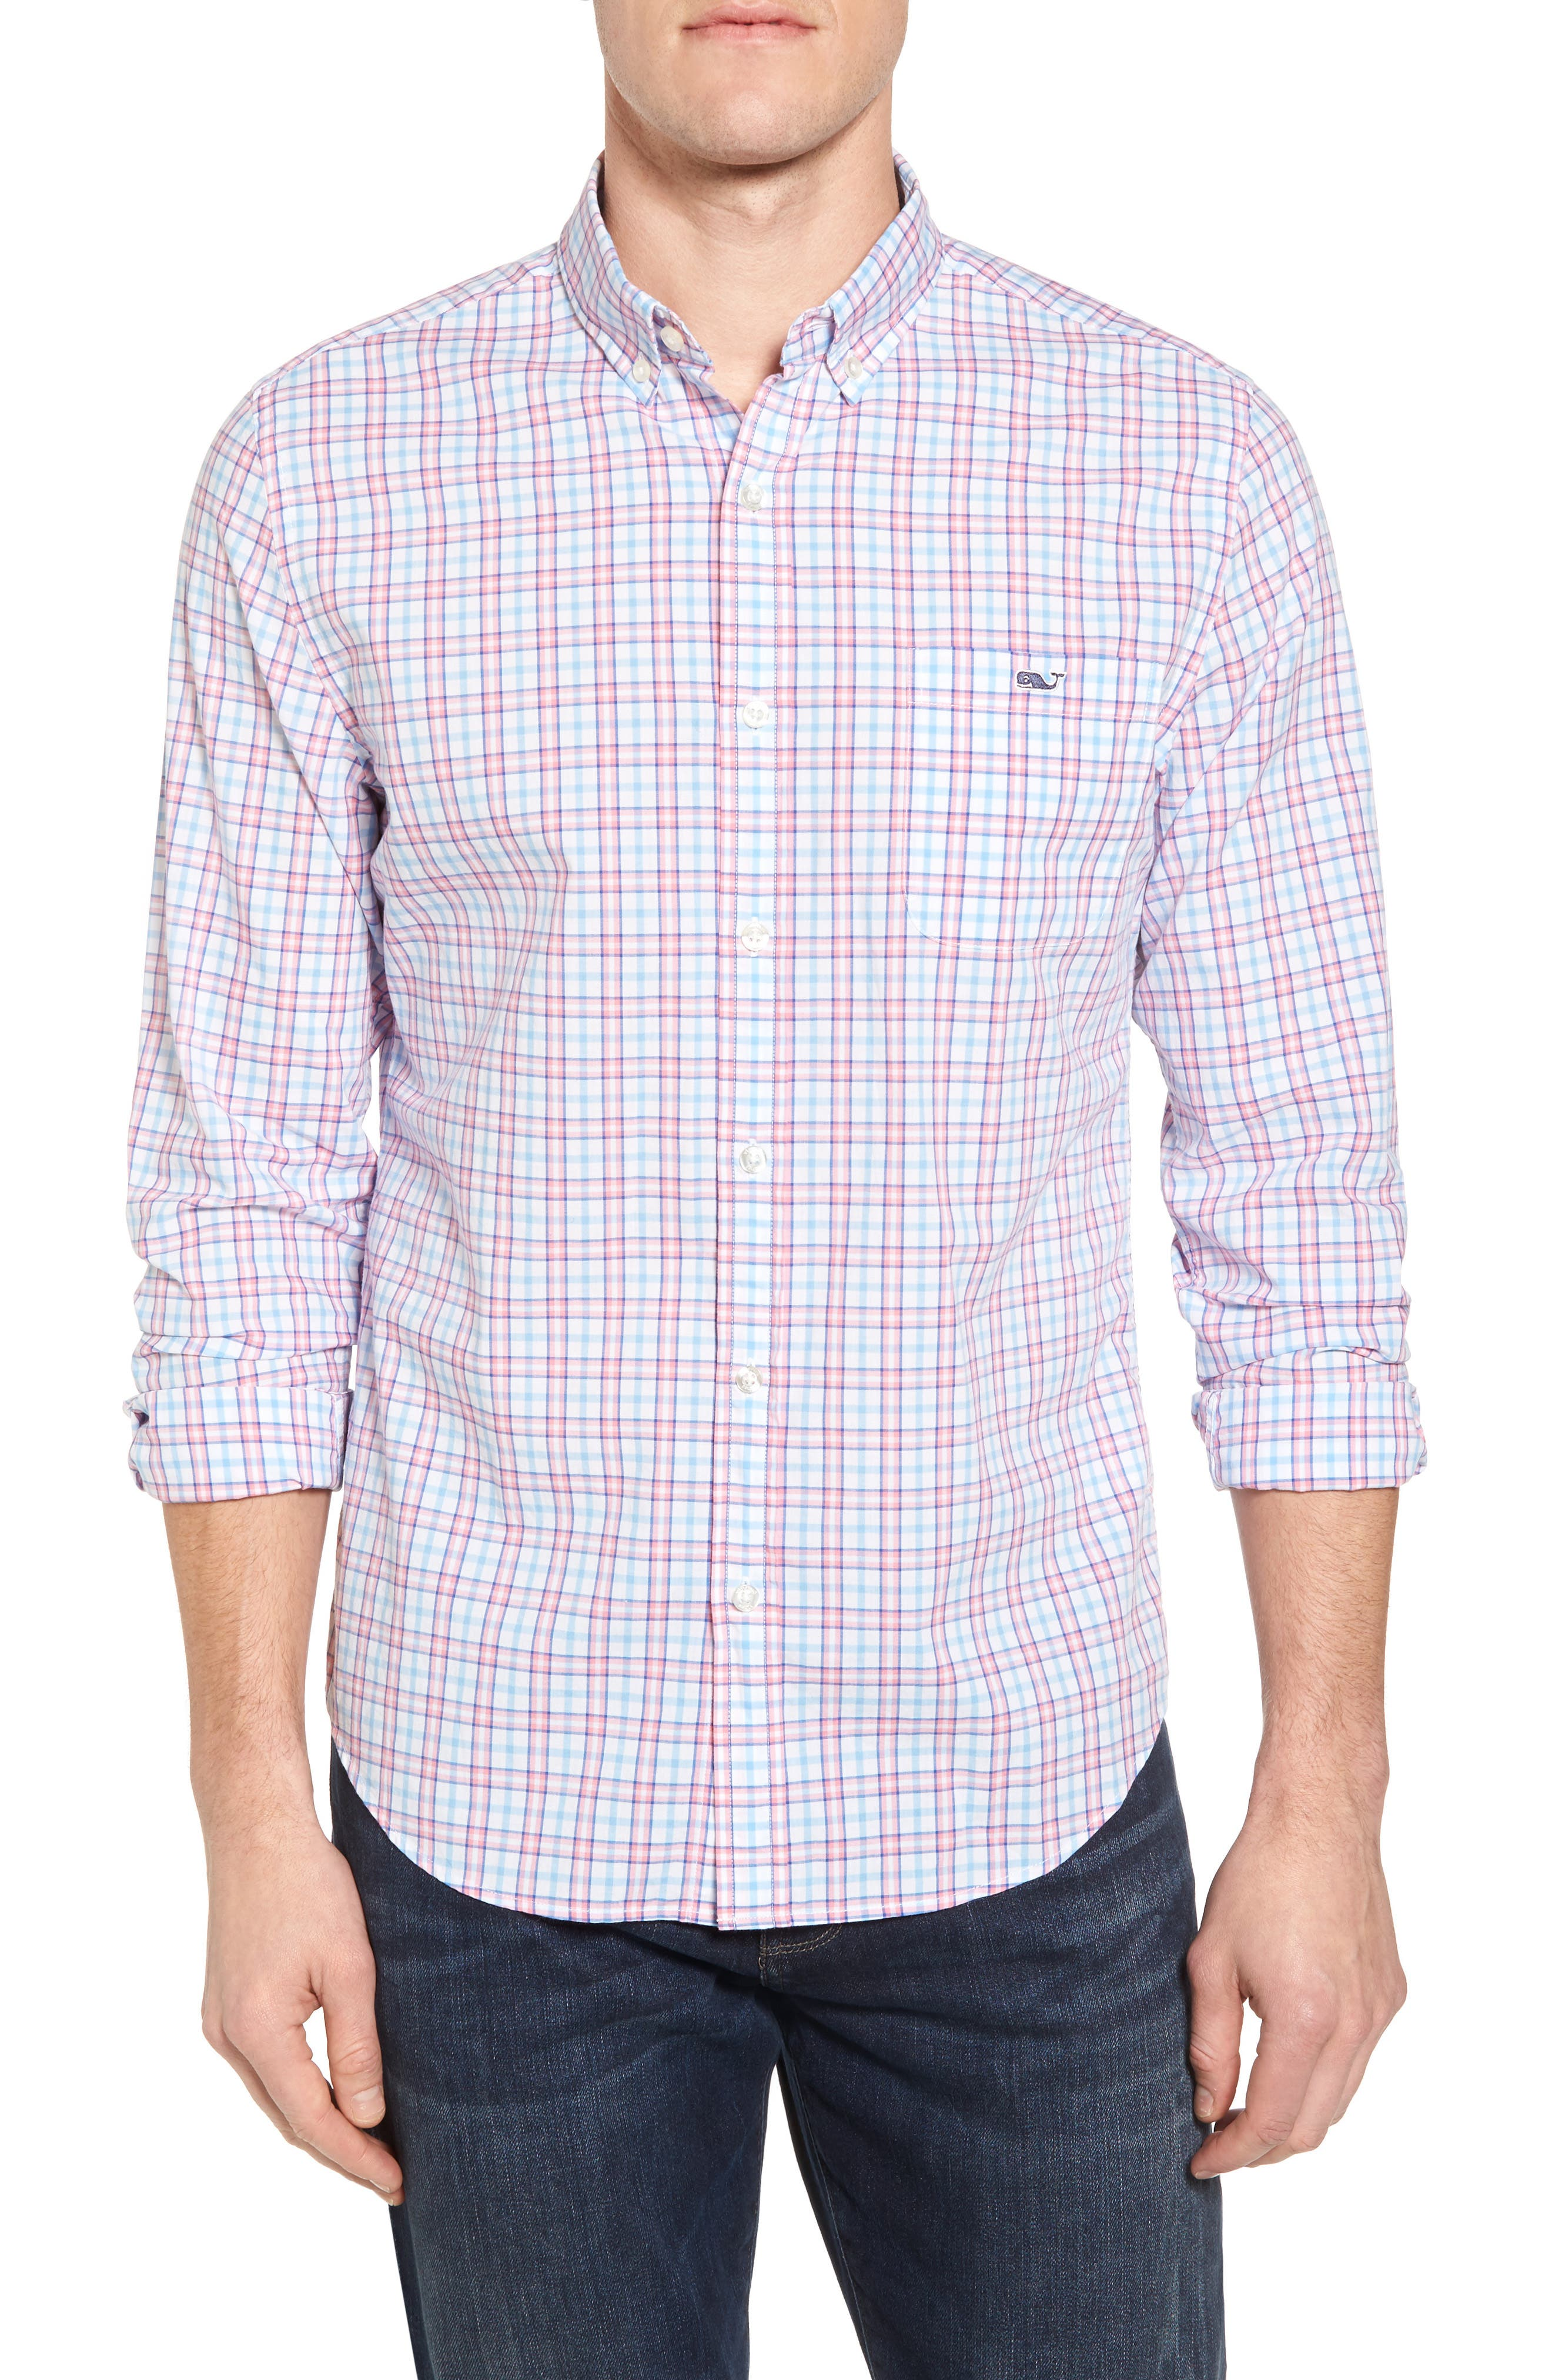 Kennard Tucker Slim Fit Plaid Sport Shirt,                         Main,                         color, Bahama Breeze